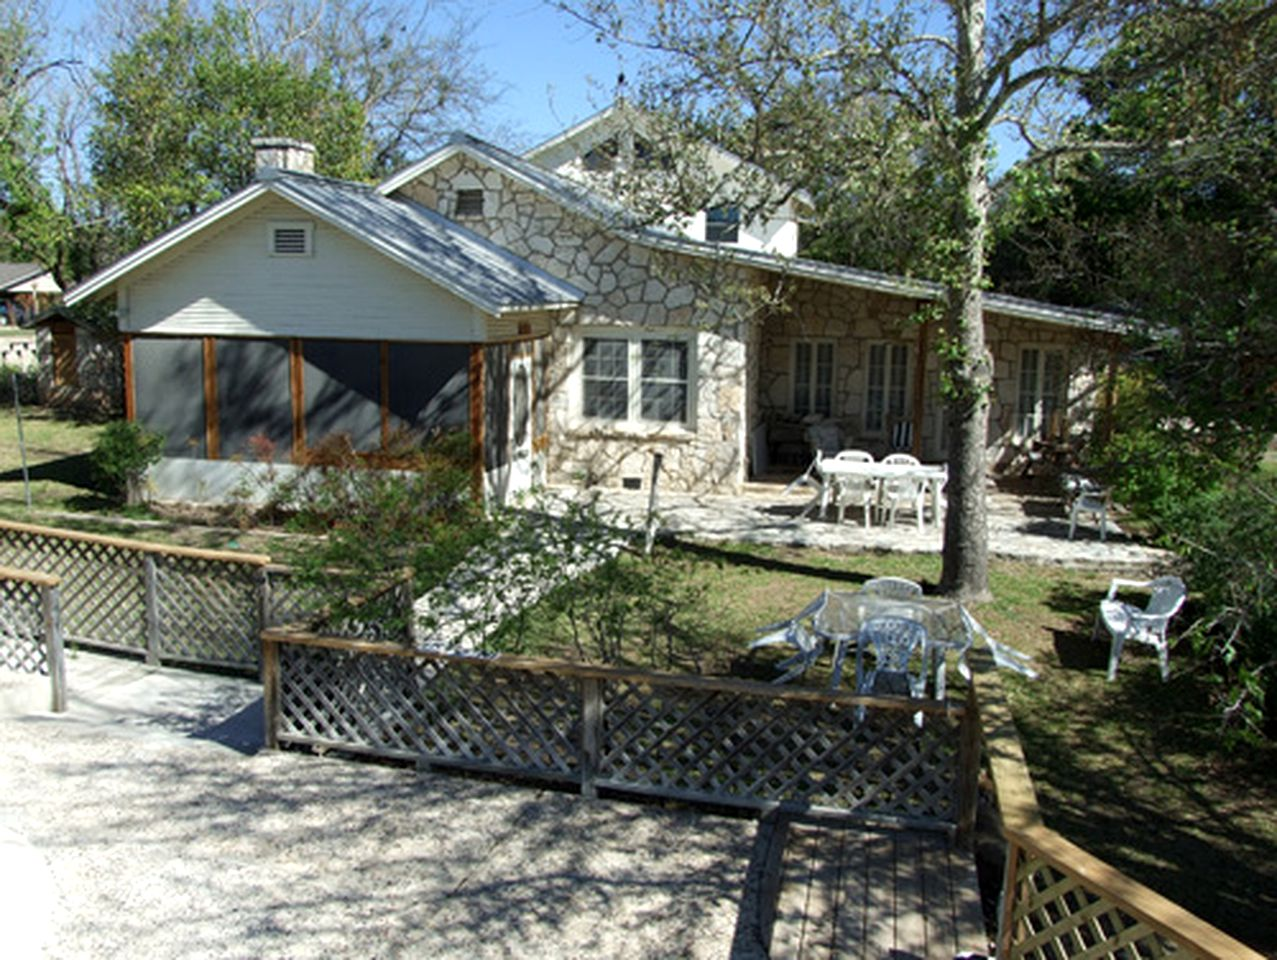 Vacation Rentals (Ingram, Texas, United States)